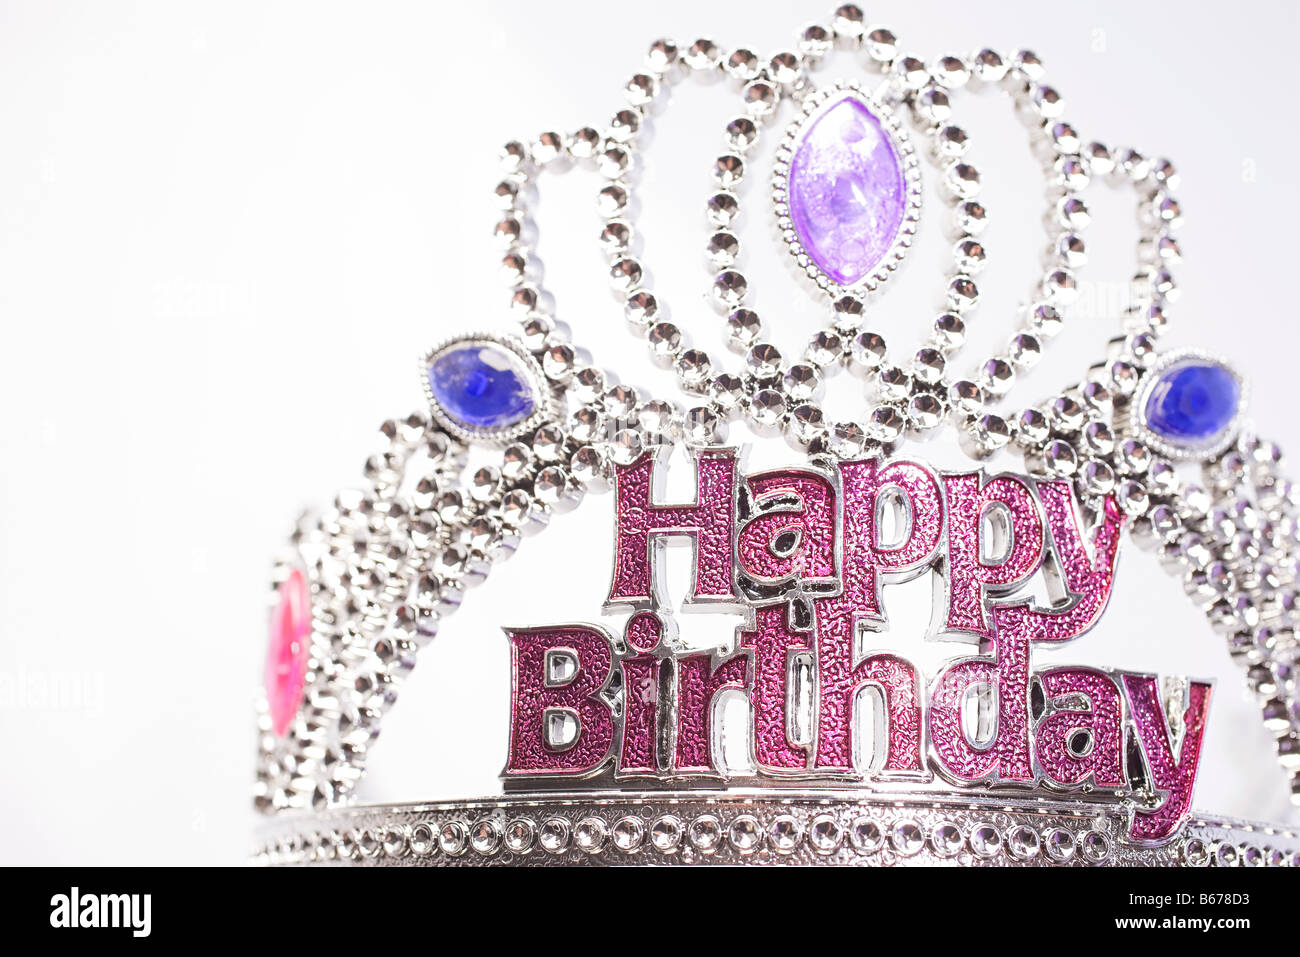 Happy birthday crown - Stock Image